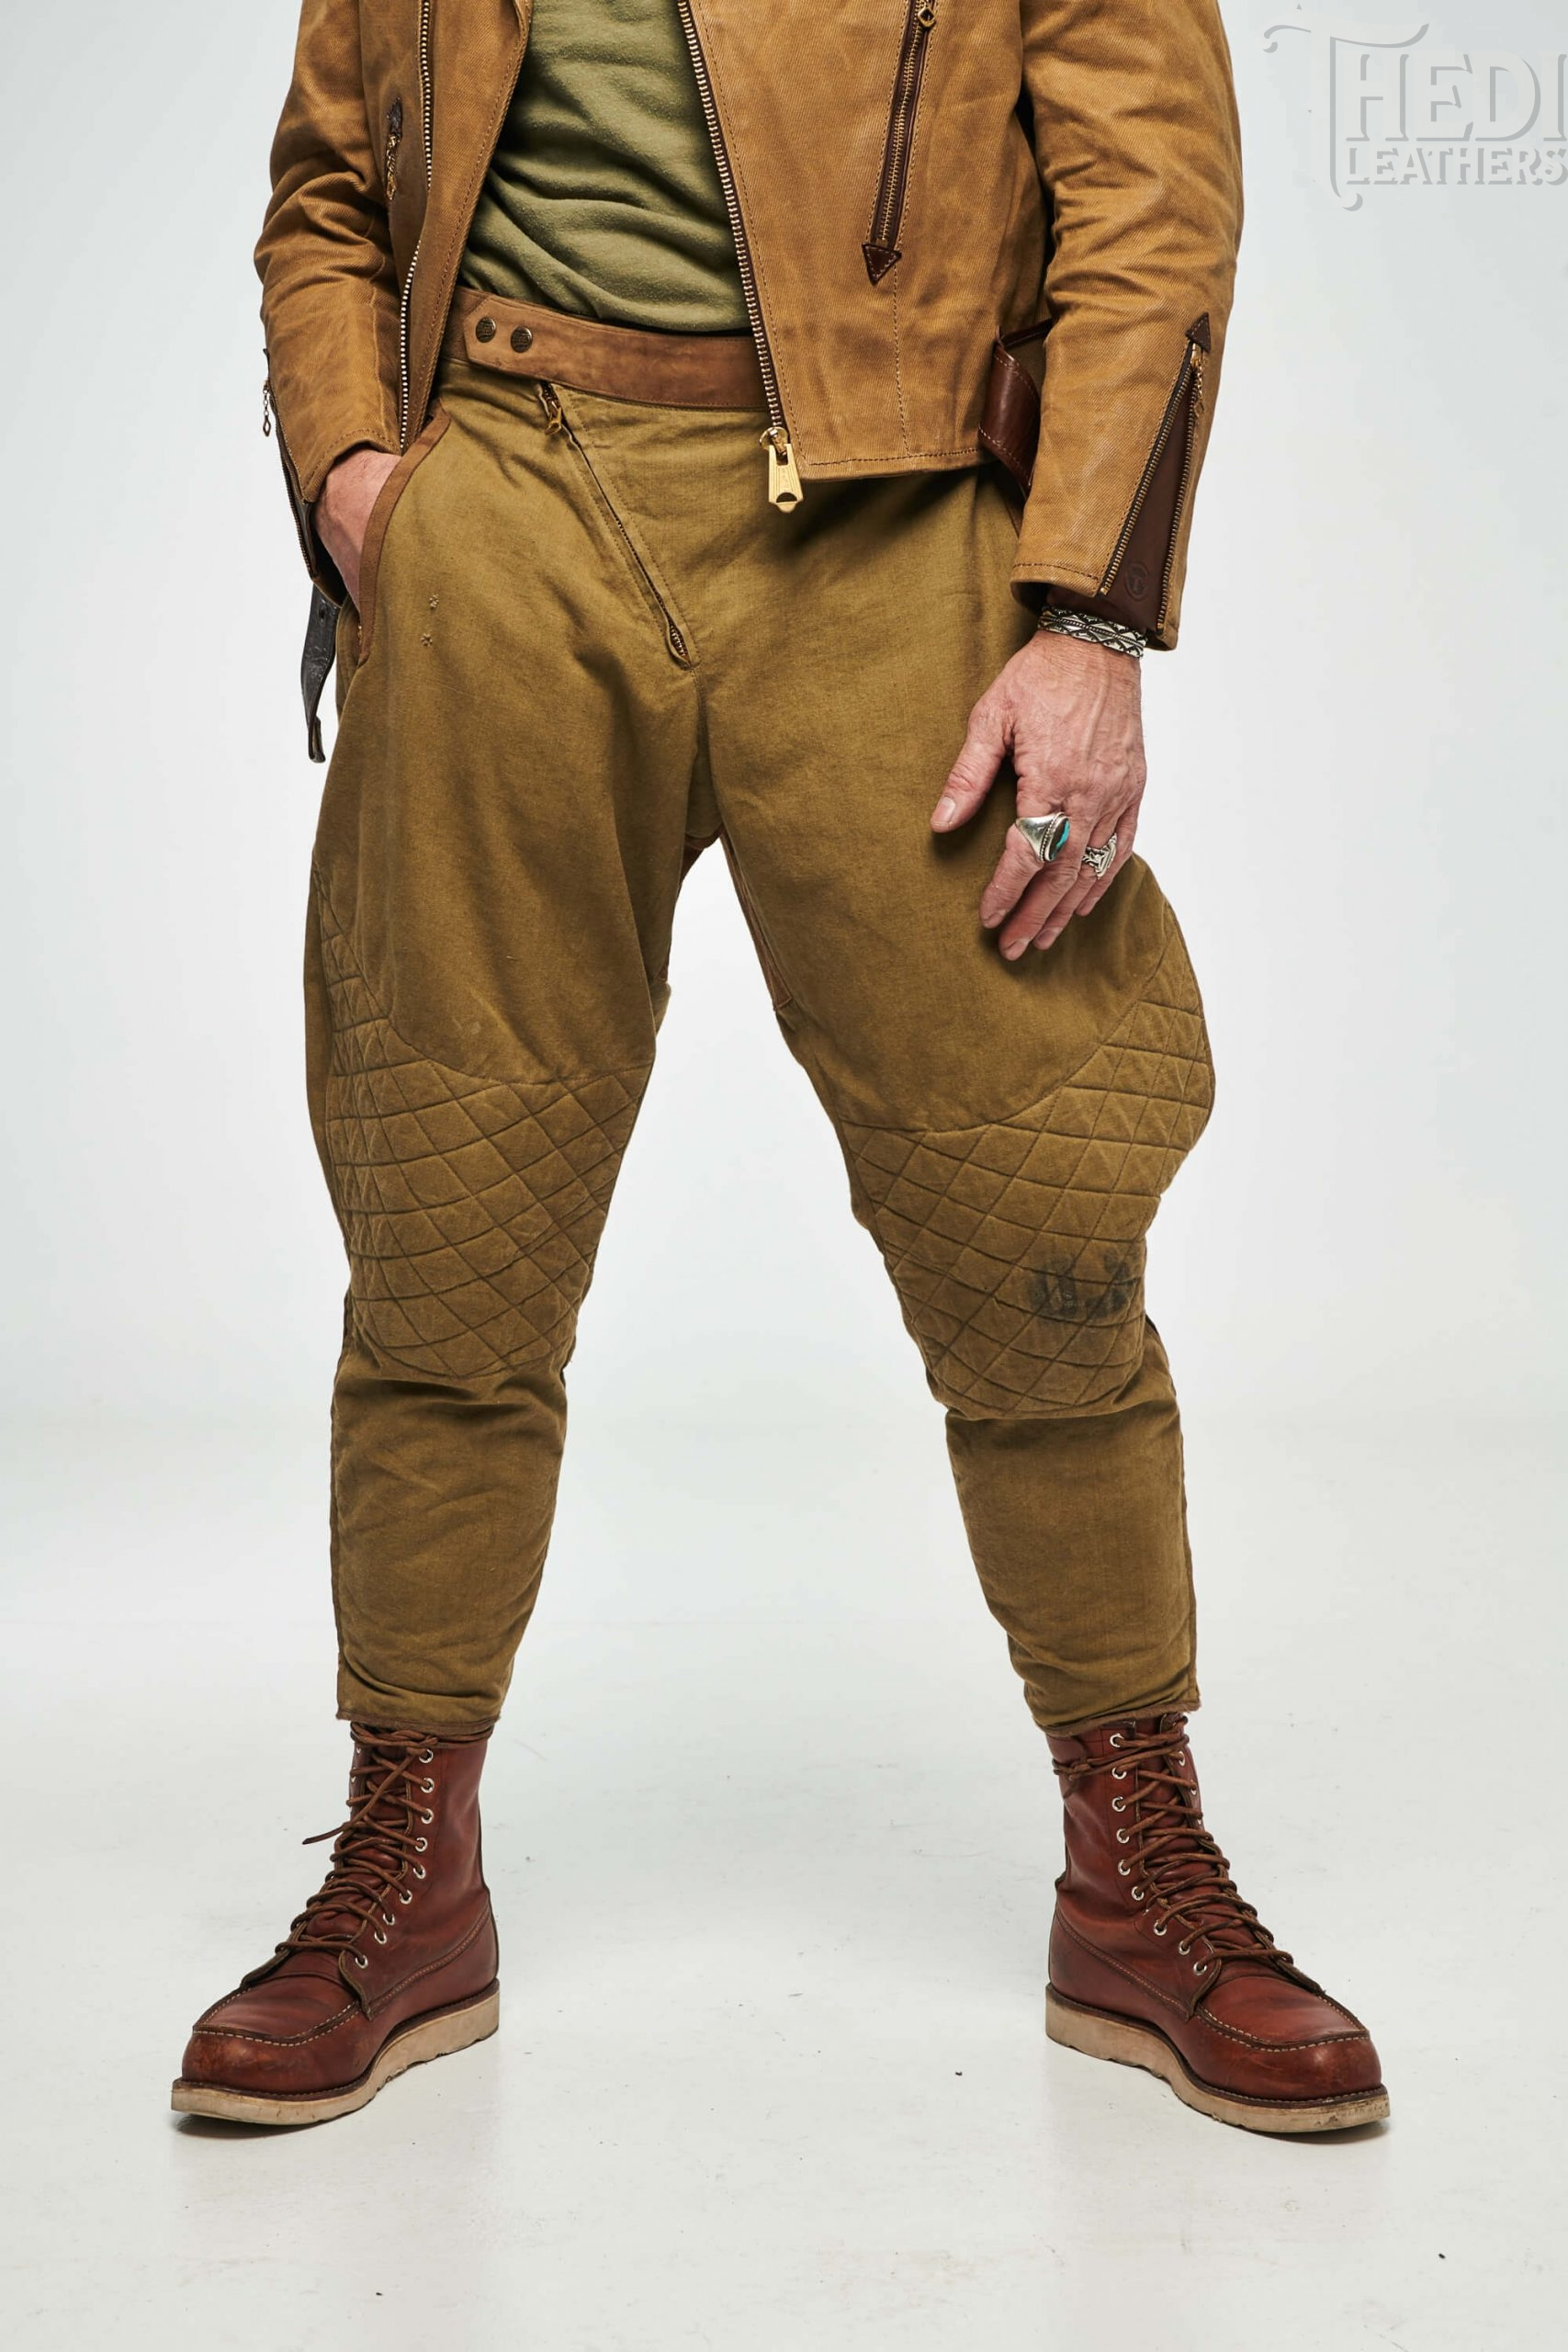 https://thedi-leathers.com/wp-content/uploads/2019/10/CANVAS-PANTS-FRONT-scaled.jpg